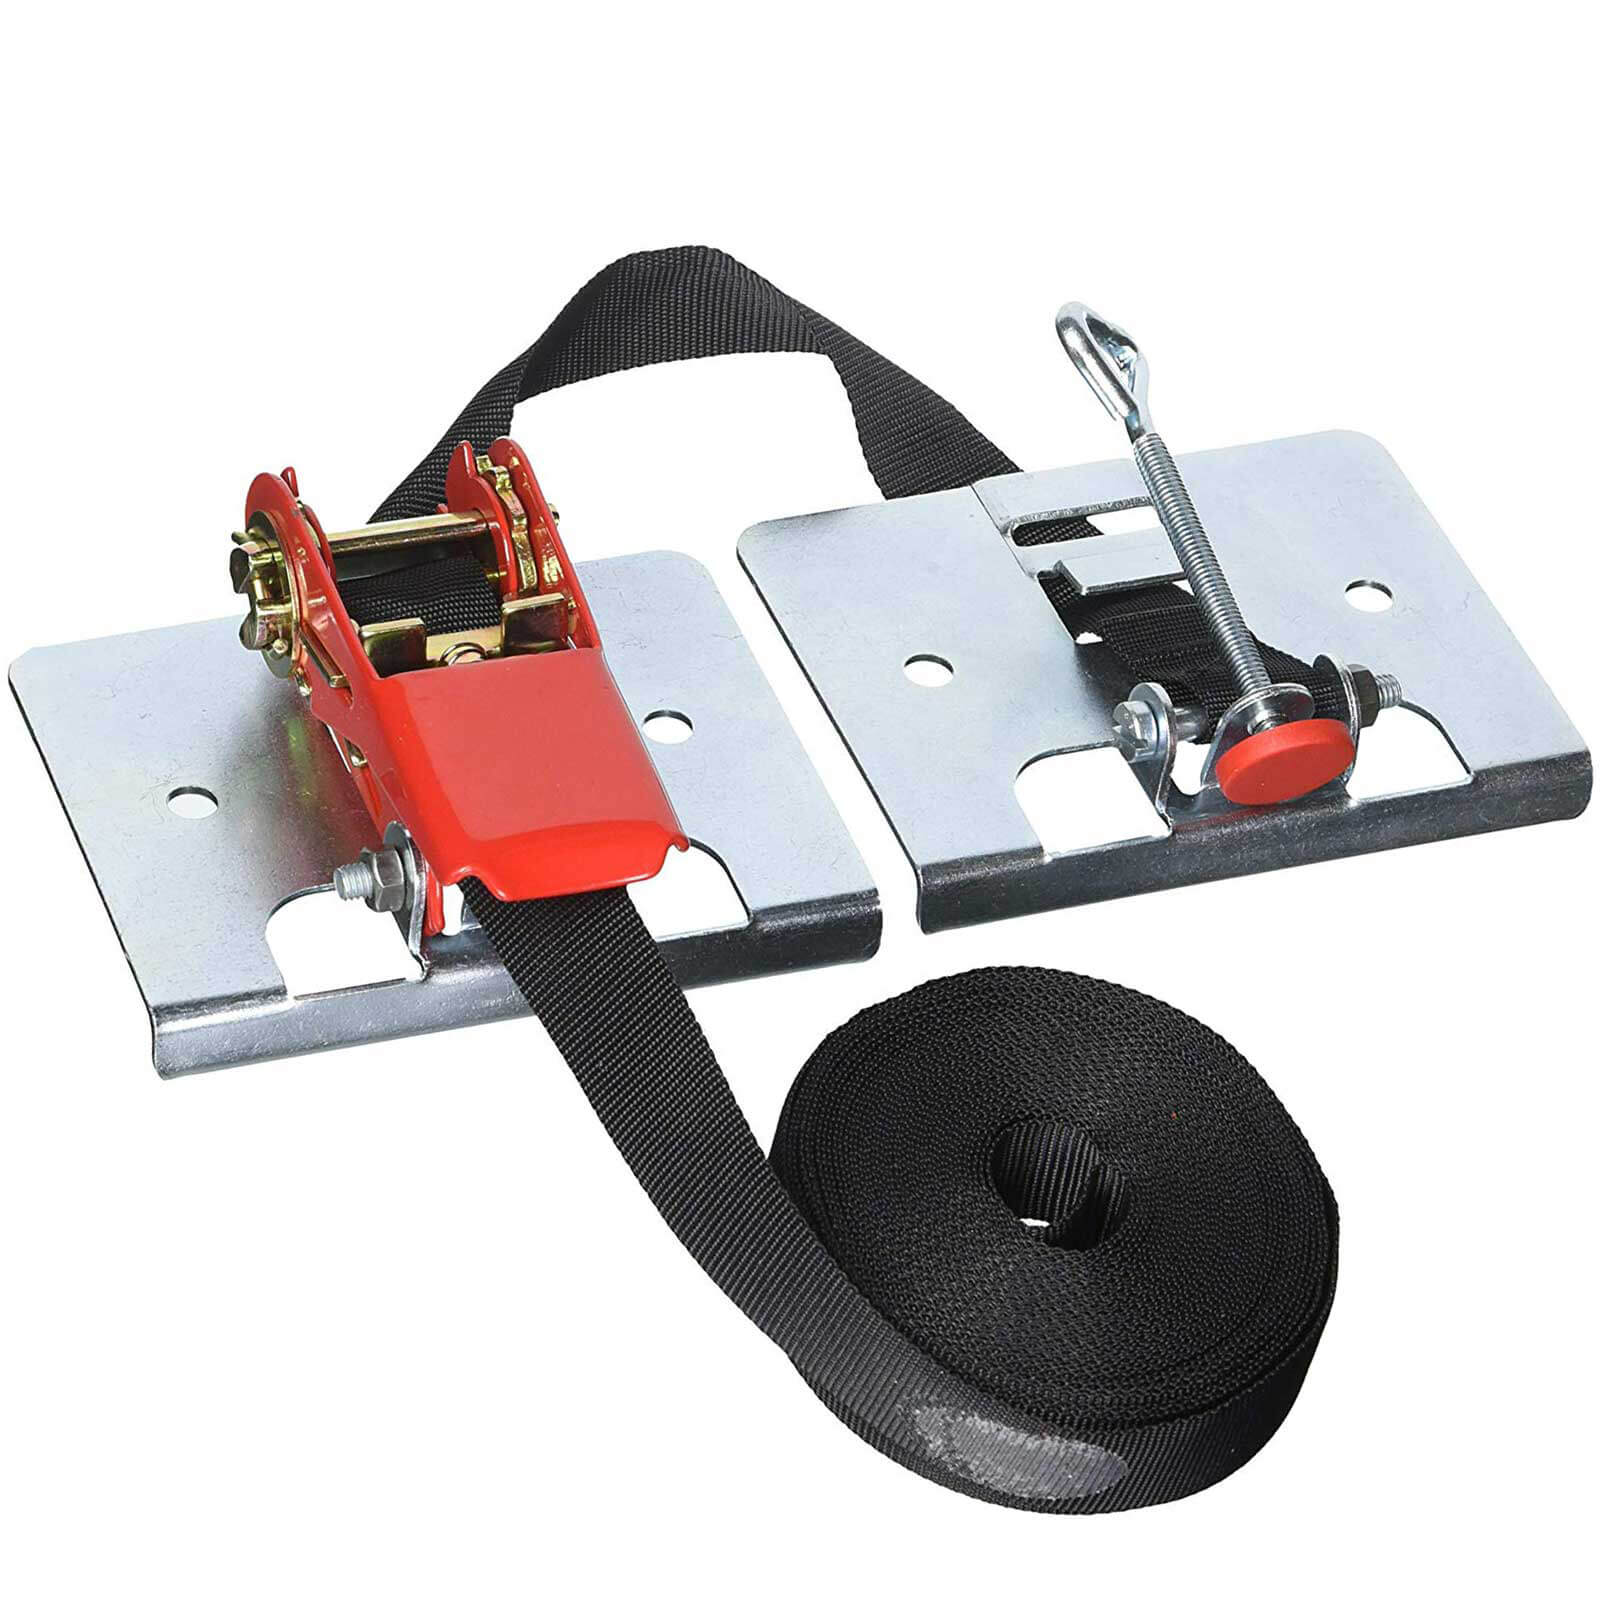 Click to view product details and reviews for Bessey Svh 7600 Floor Clamp.